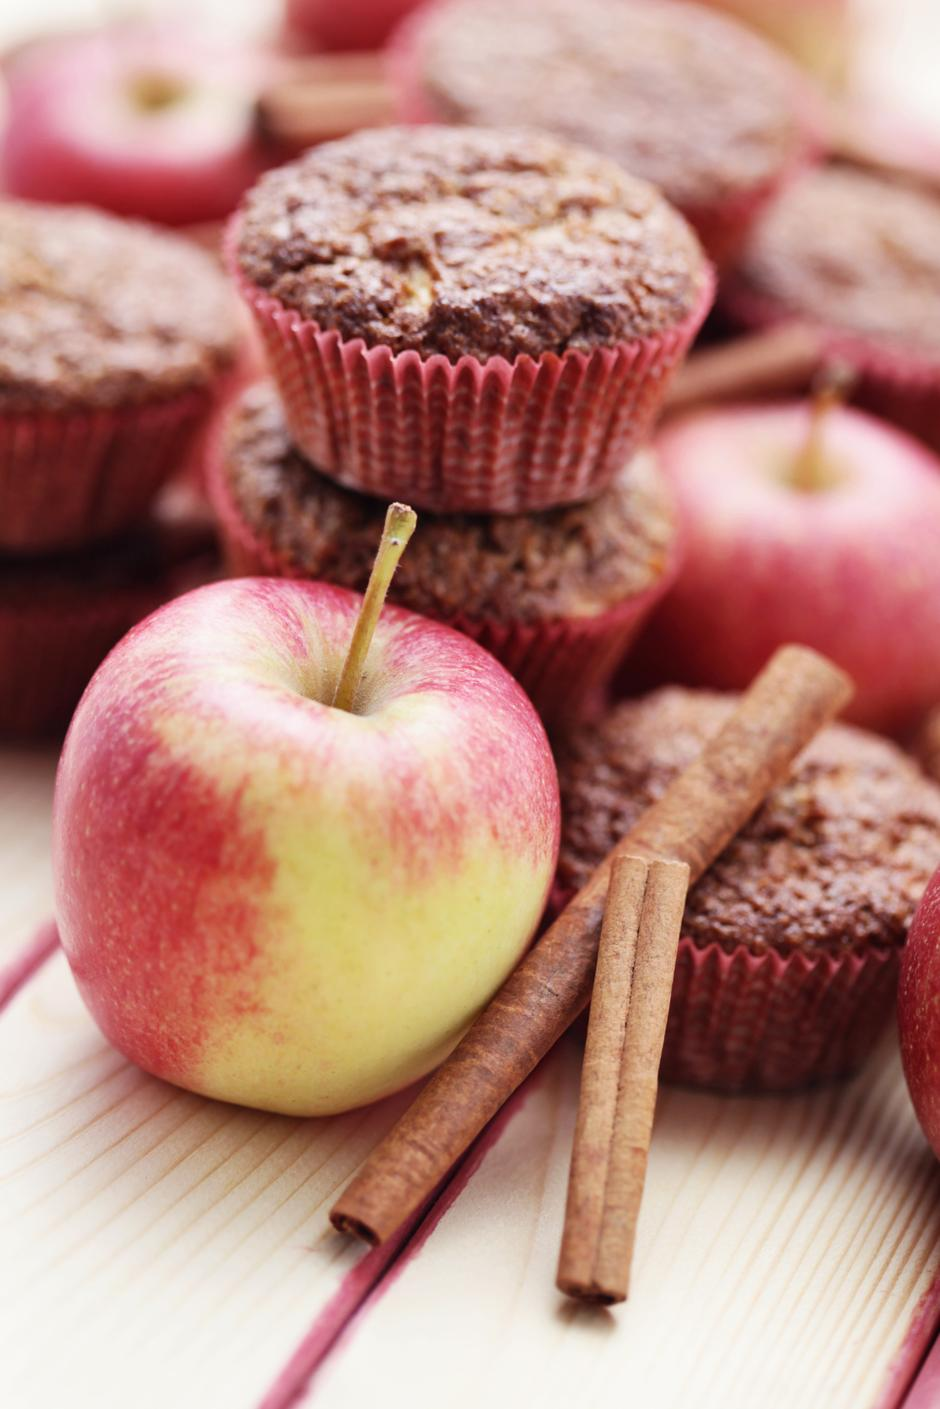 Muffini s jabukama | Author: Thinkstock